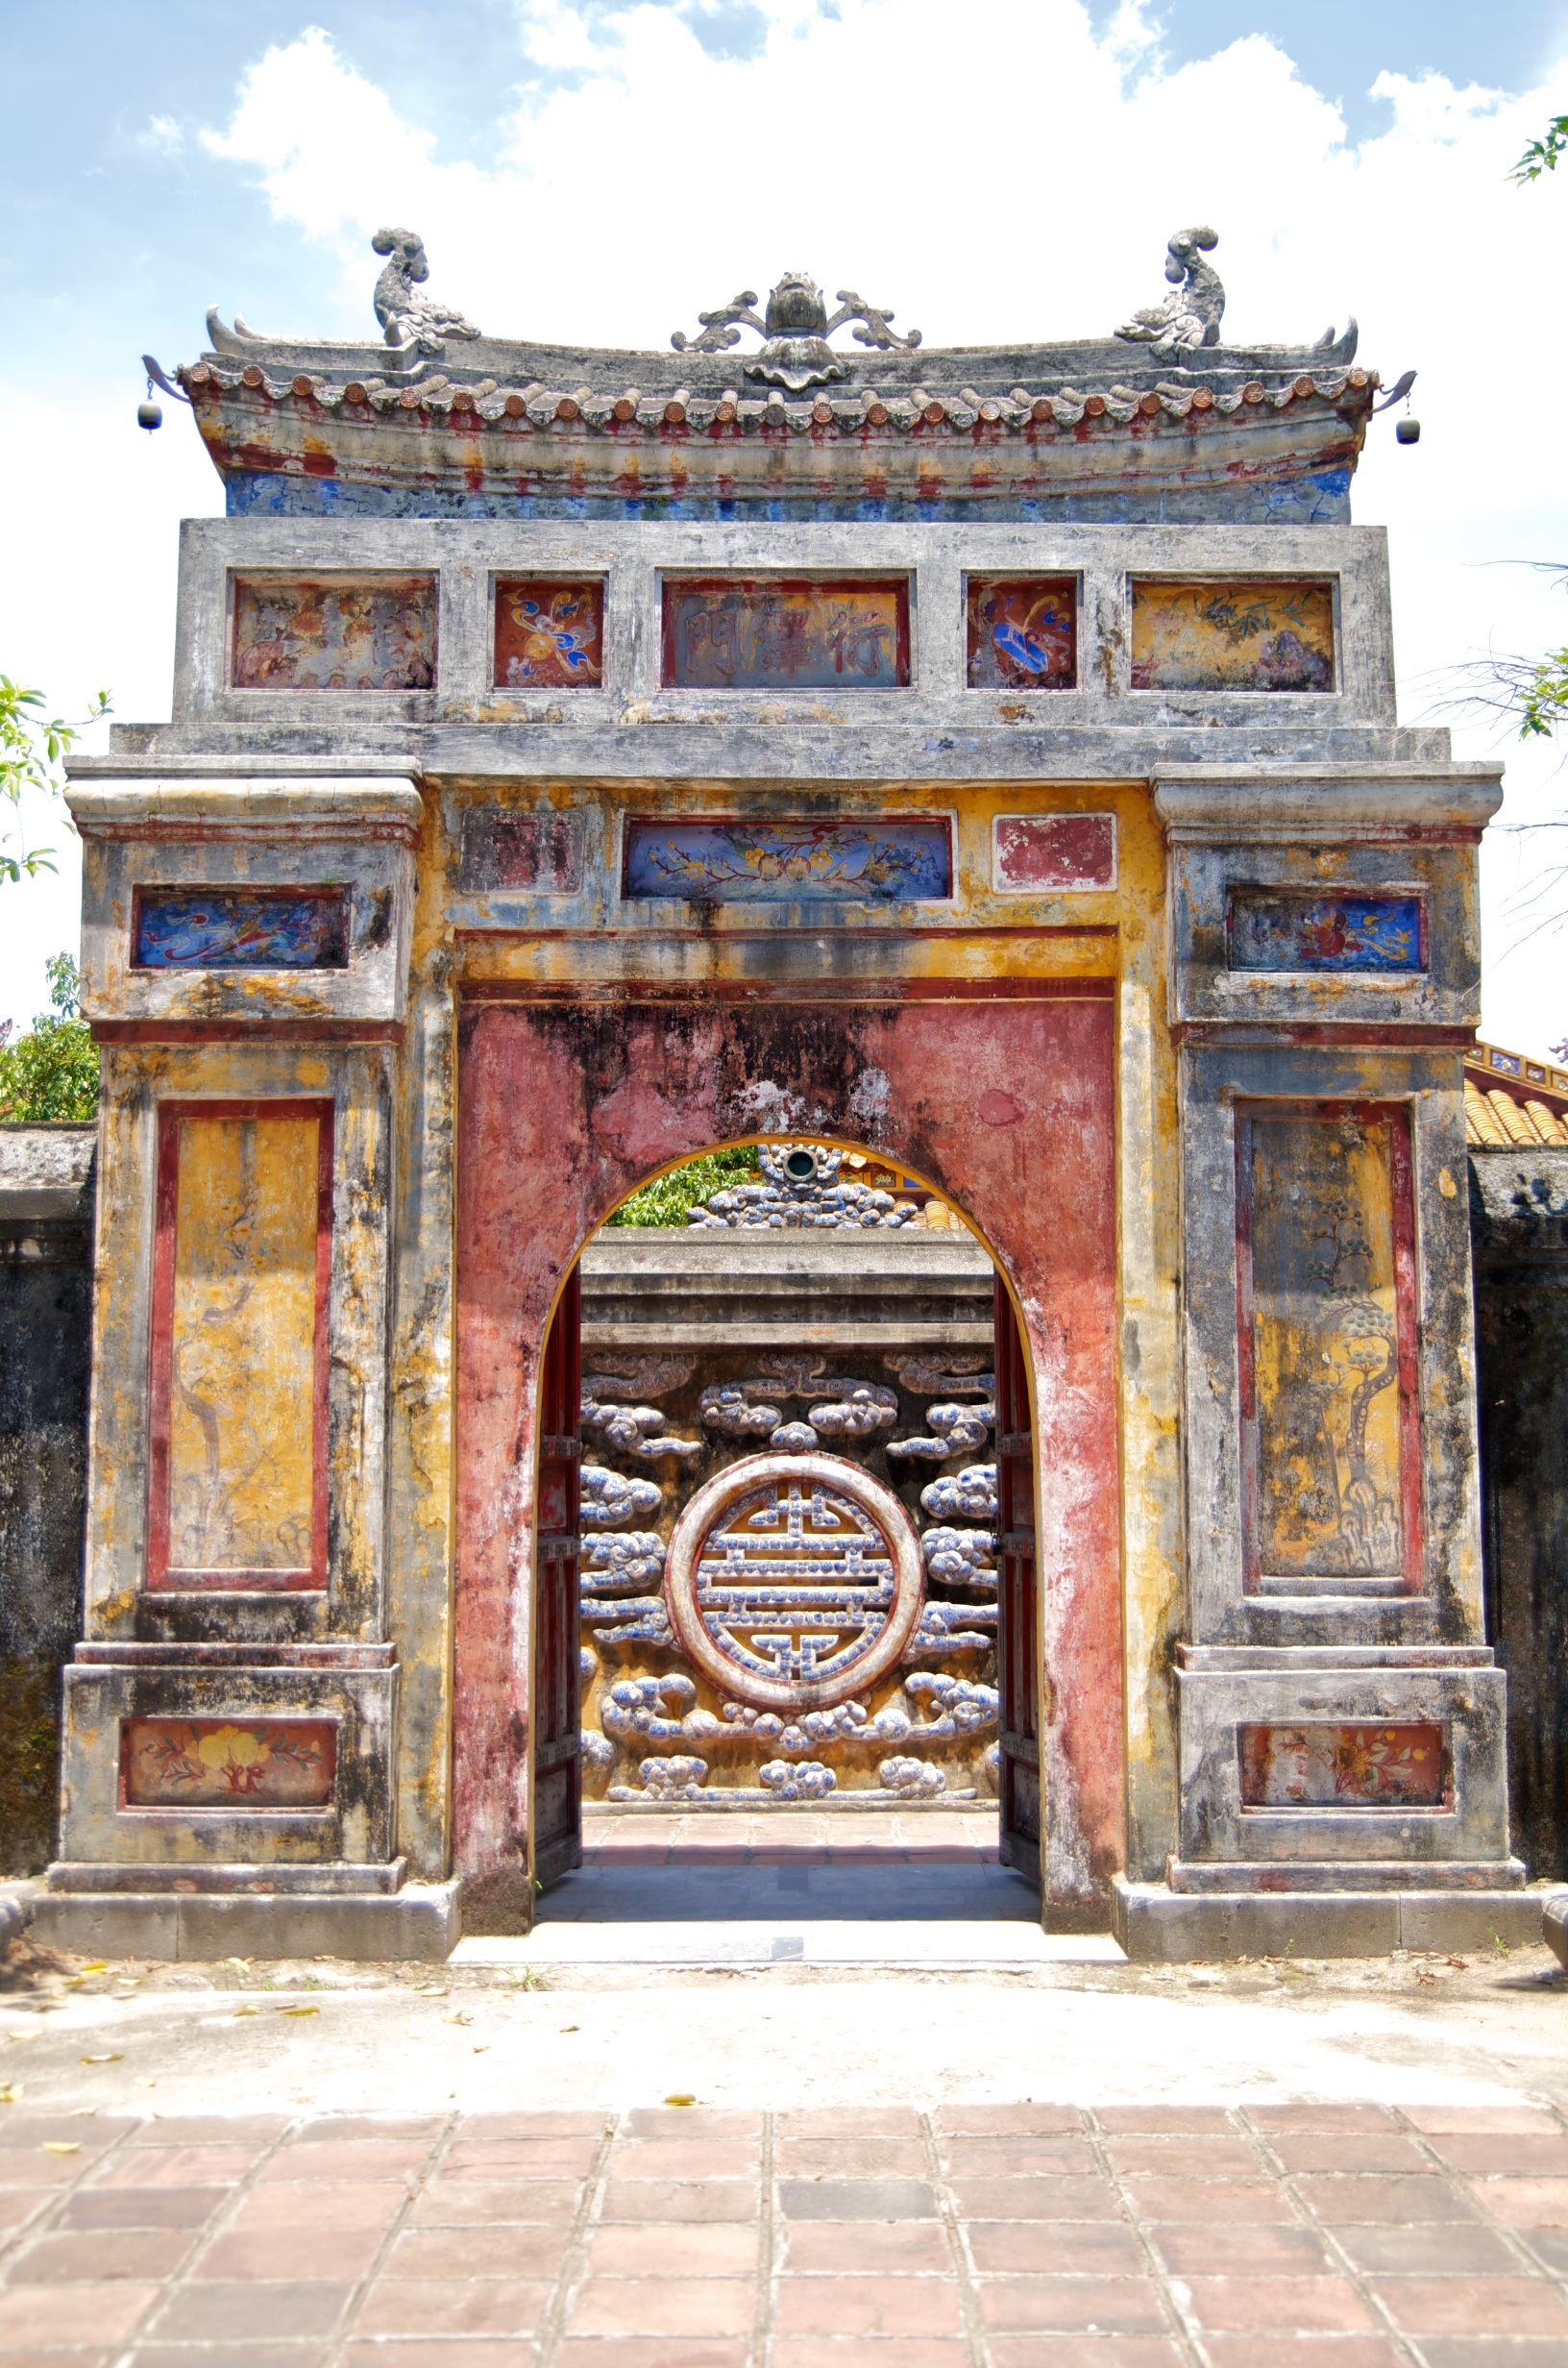 Monumental door in Hue